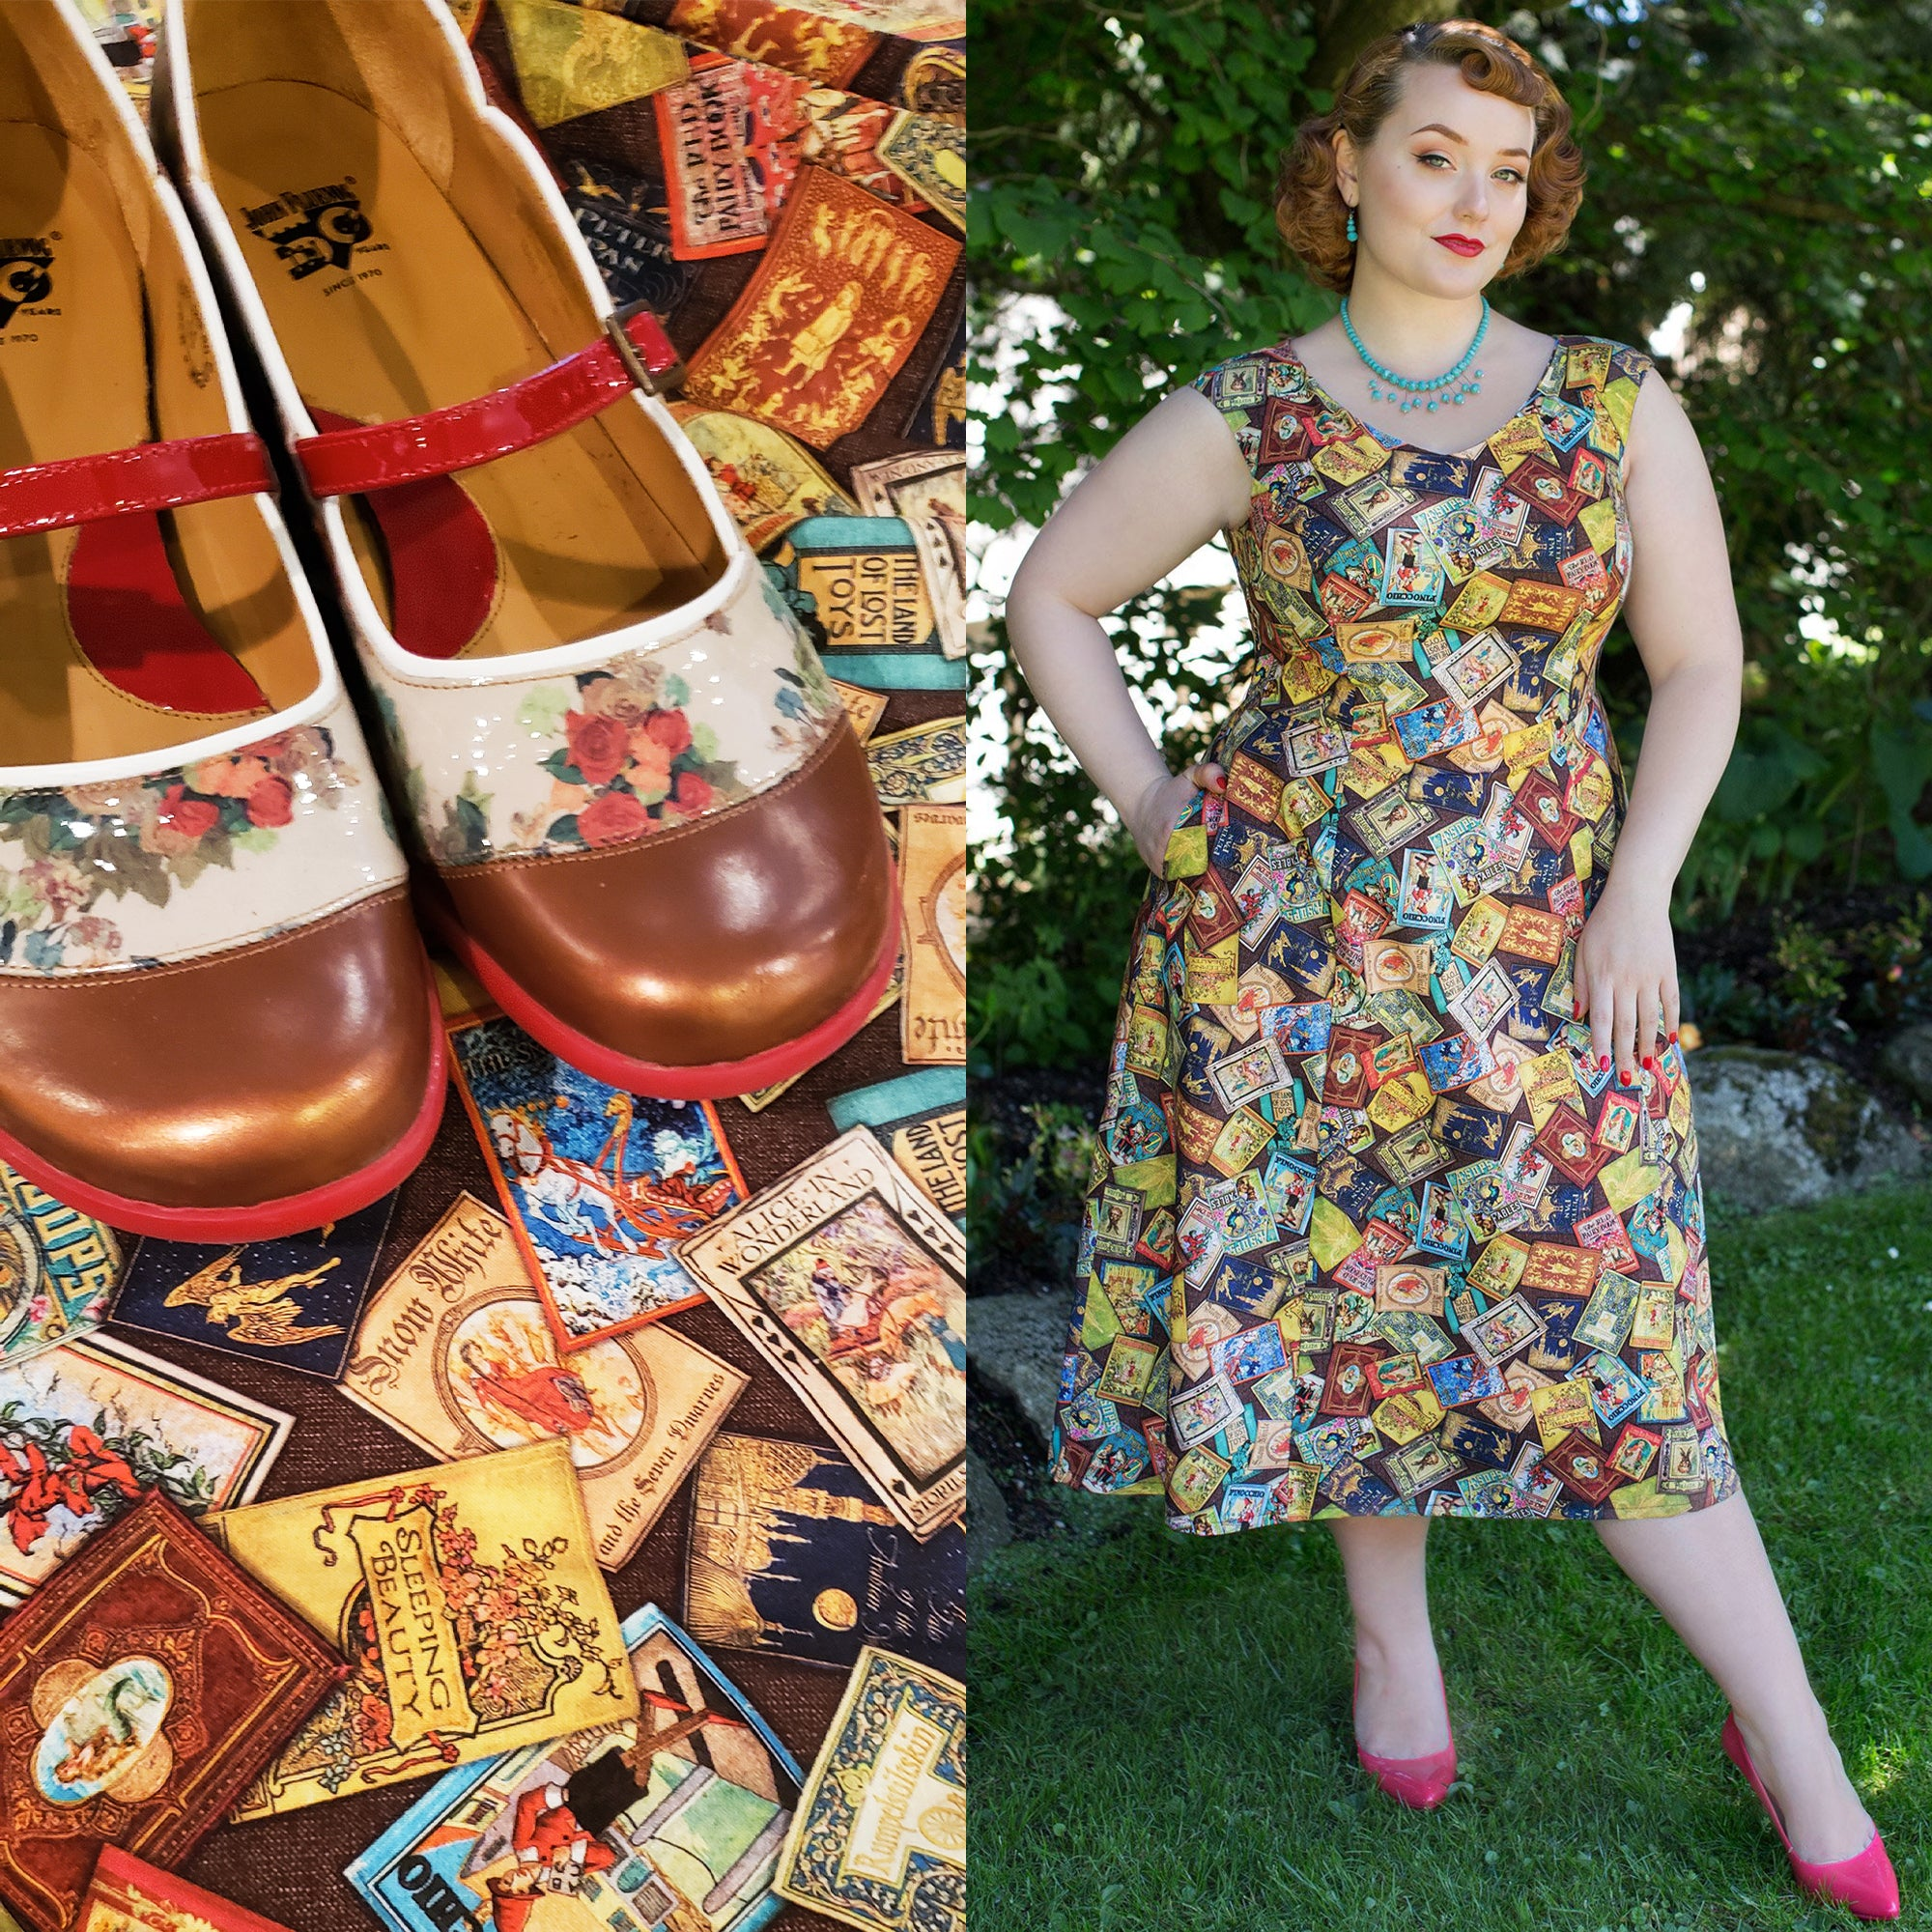 Fluevog Shoes with Waterfront dress in Fables by Diane Kennedy for Cherry Velvet